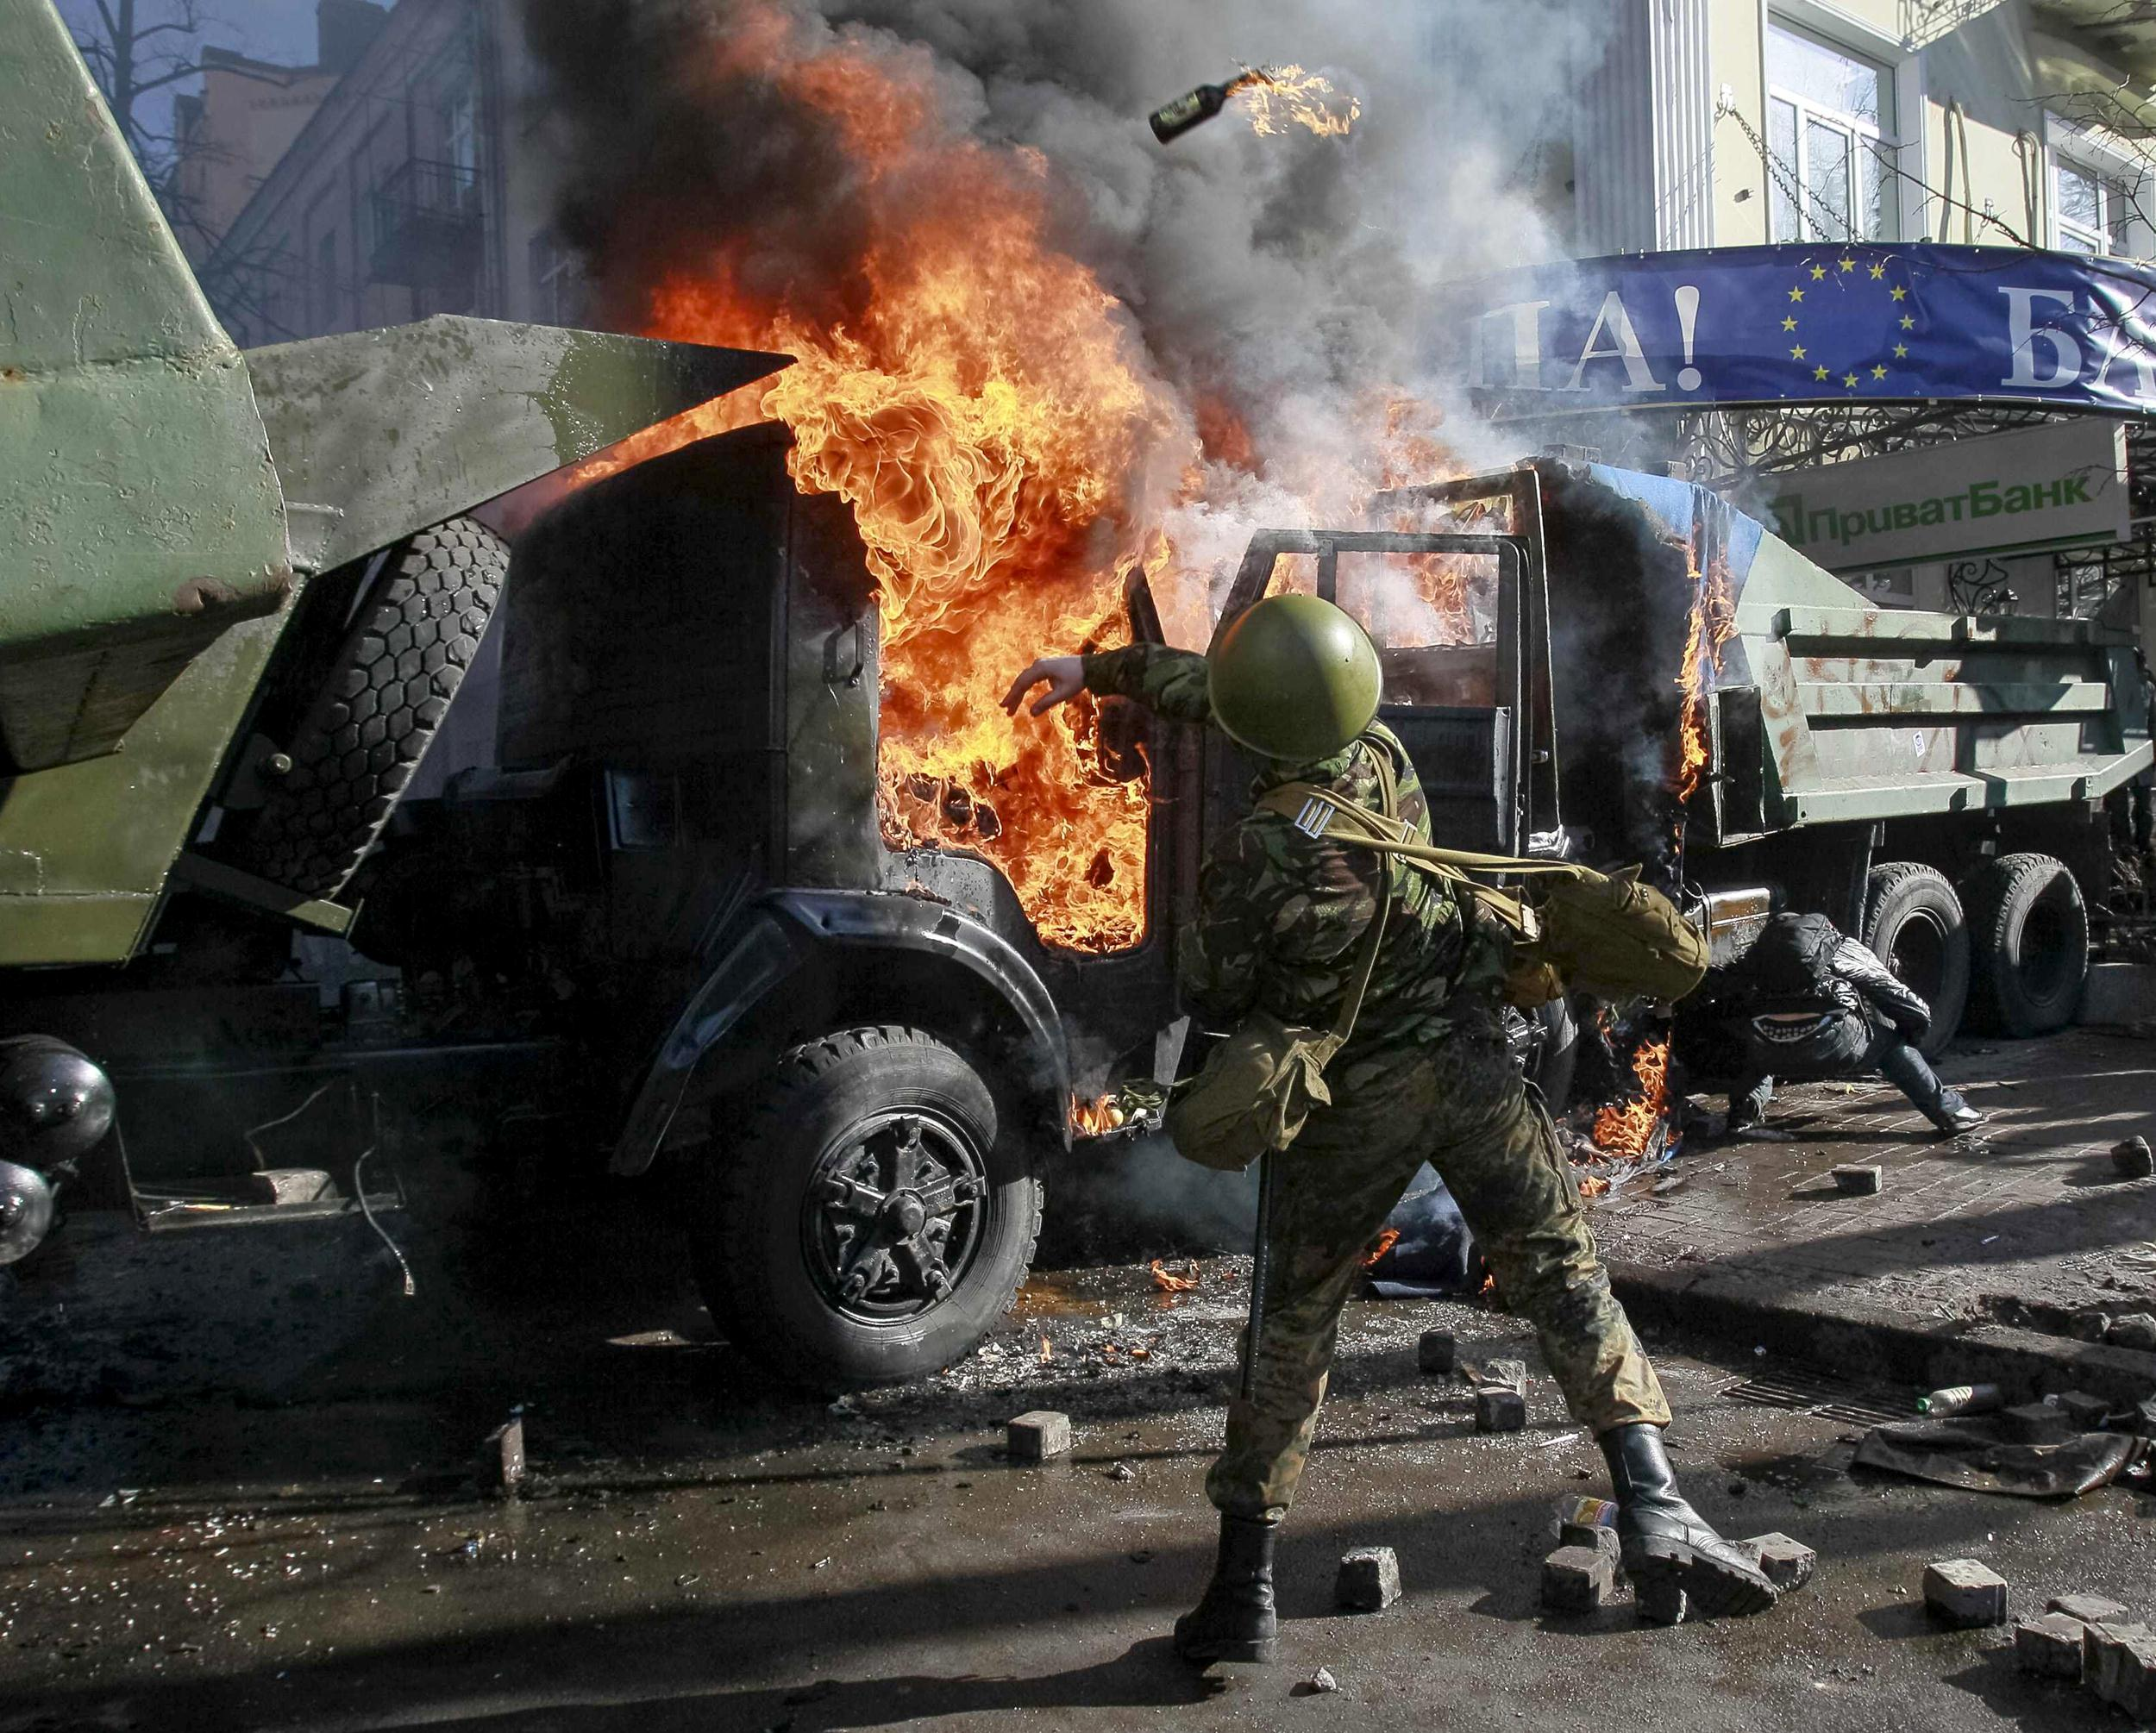 Image: An anti-government protester throws a Molotov cocktail in Kiev